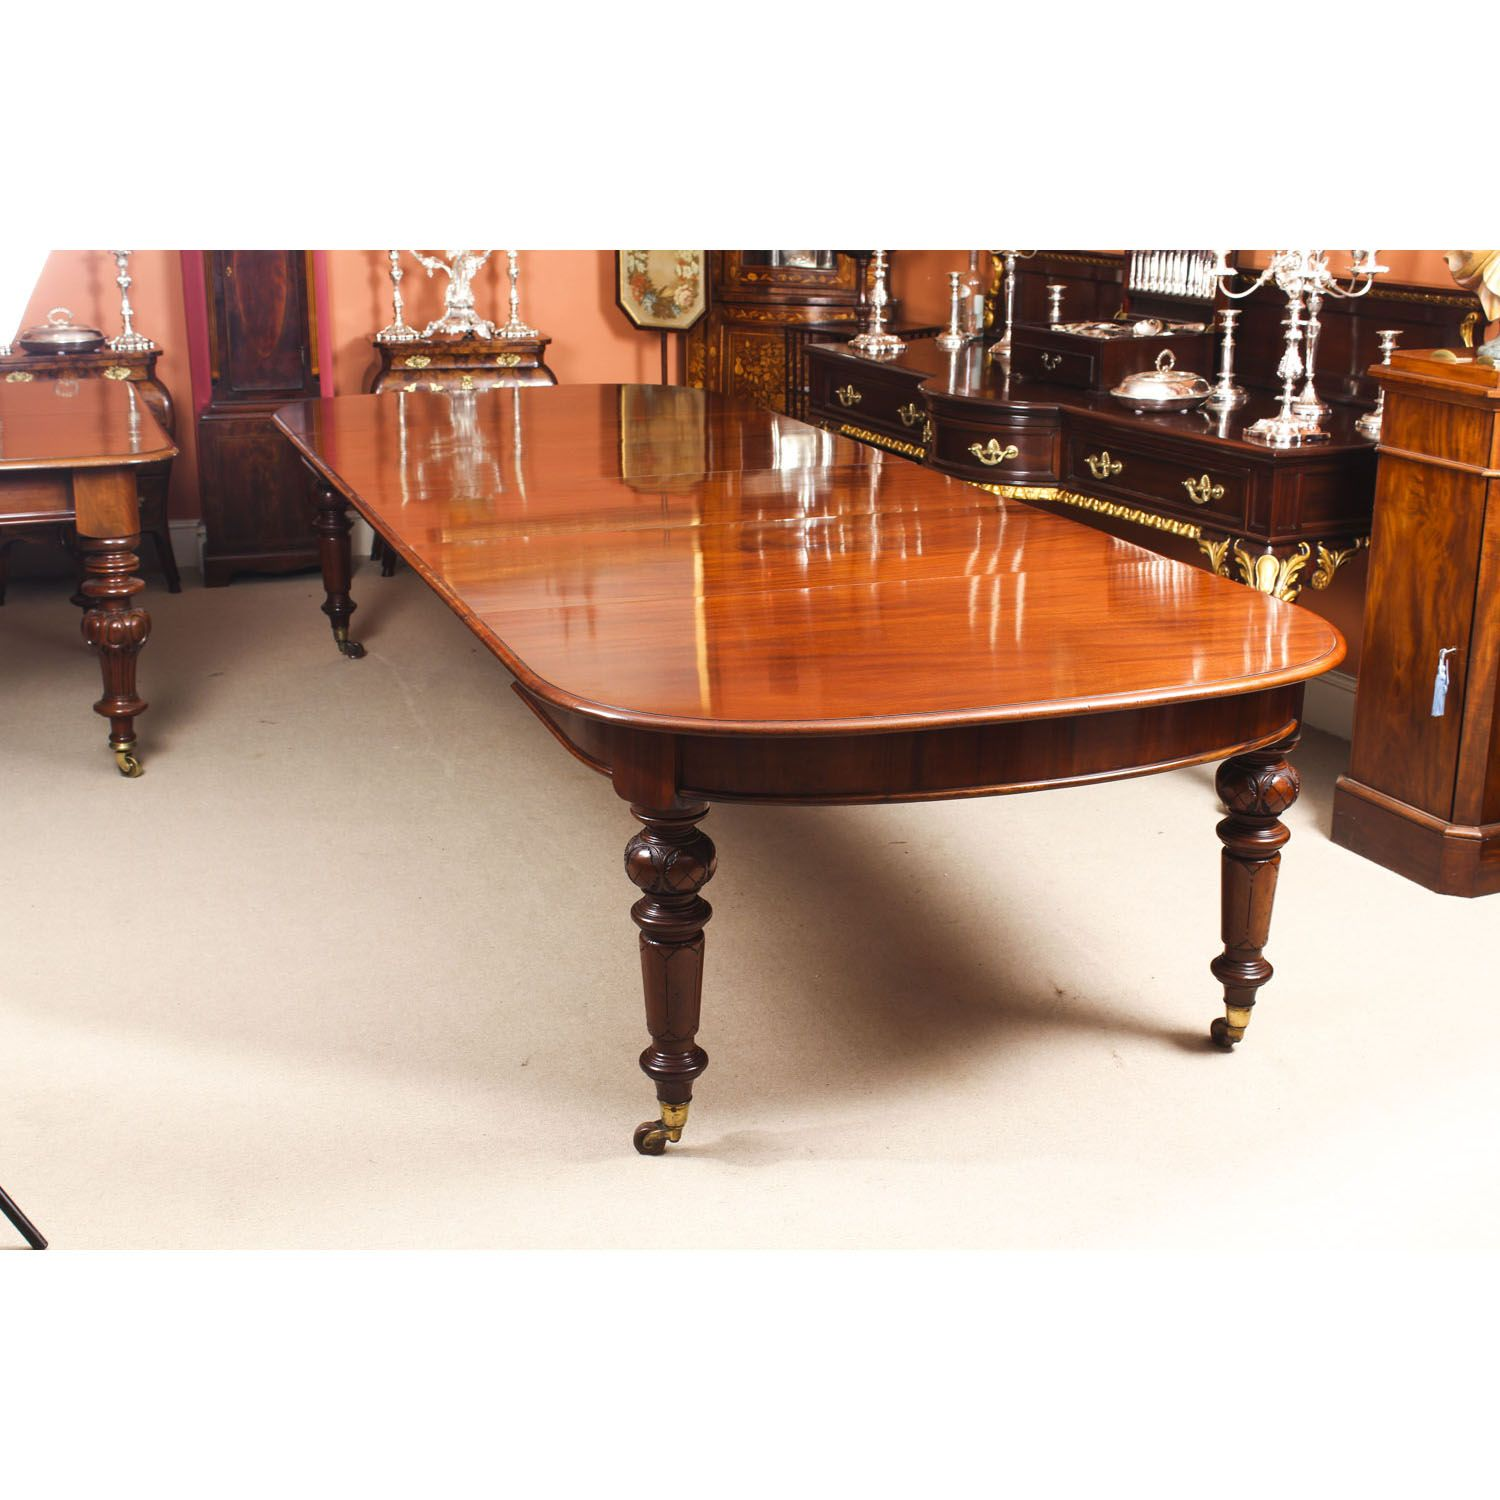 A Magnificent Antique Victorian Solid Mahogany Dining Table Which Can Seat Fourteen Diners Victorian Dining Tables Wood Dining Room Set Extendable Dining Table